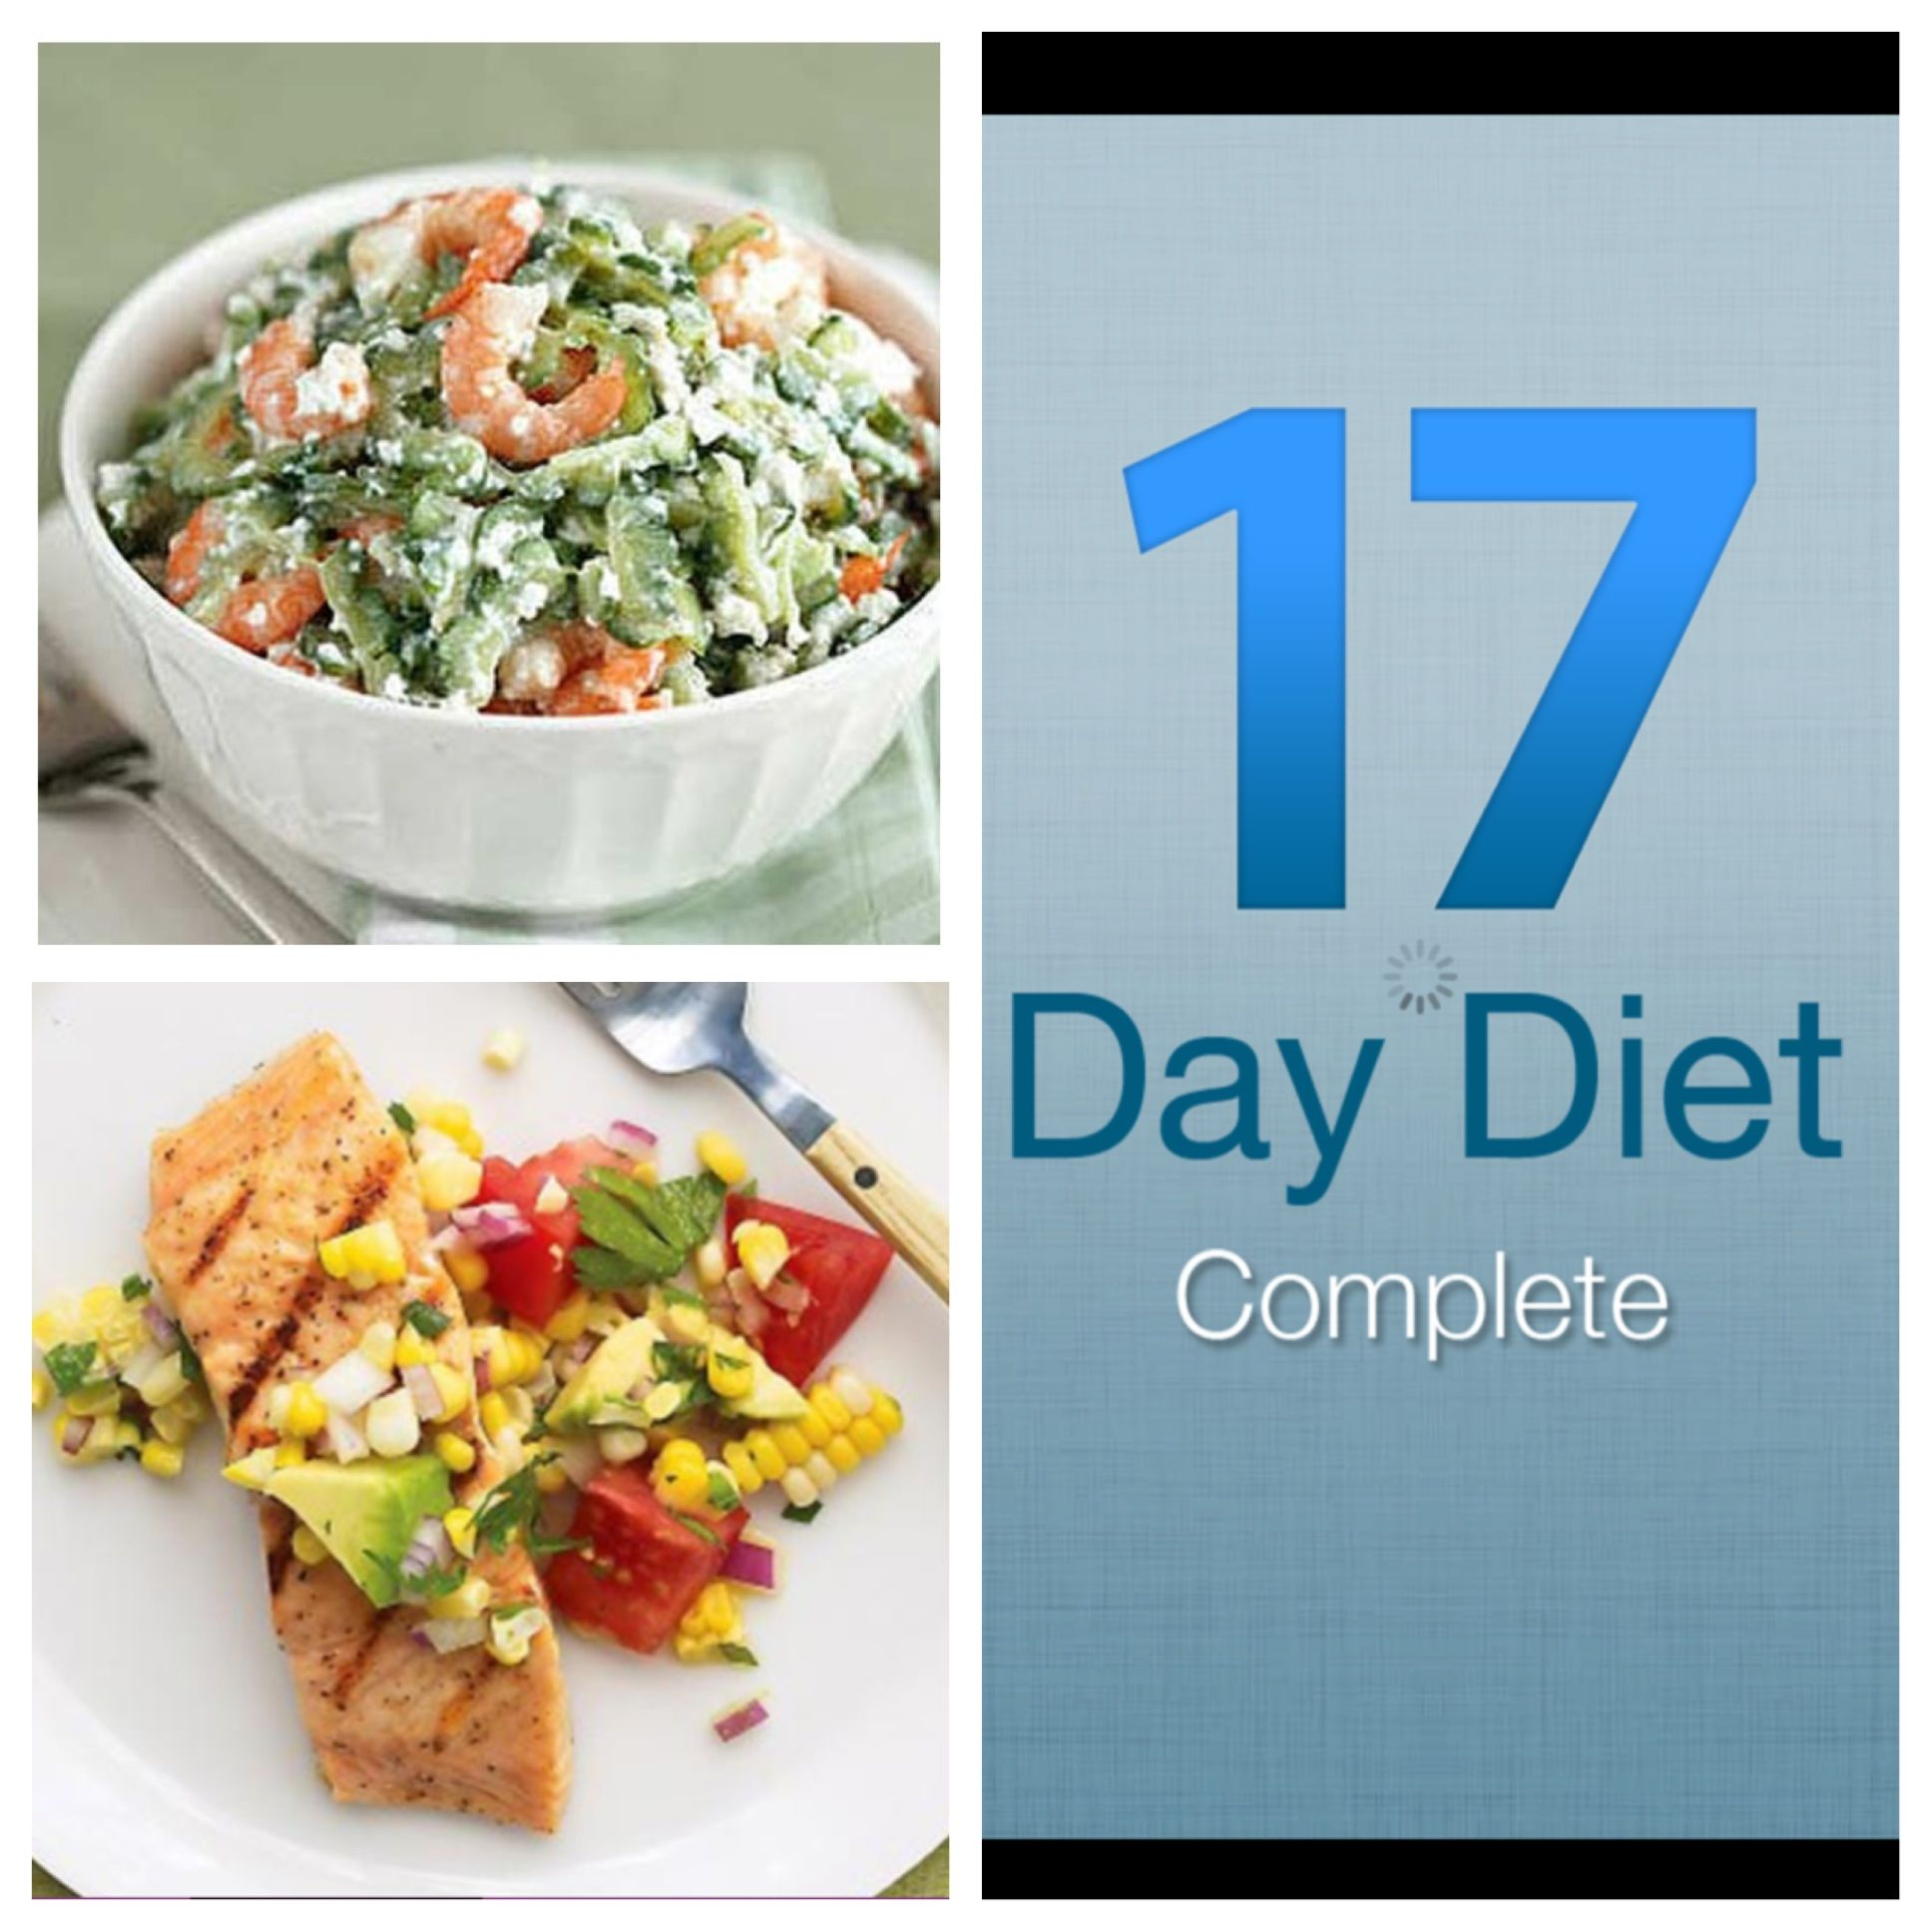 17 day diet complete app for iphone - a full guide to doing the diet the right way on your phone (available for iPhone, iPad, Android devices or Kindle) Cycles 1-4